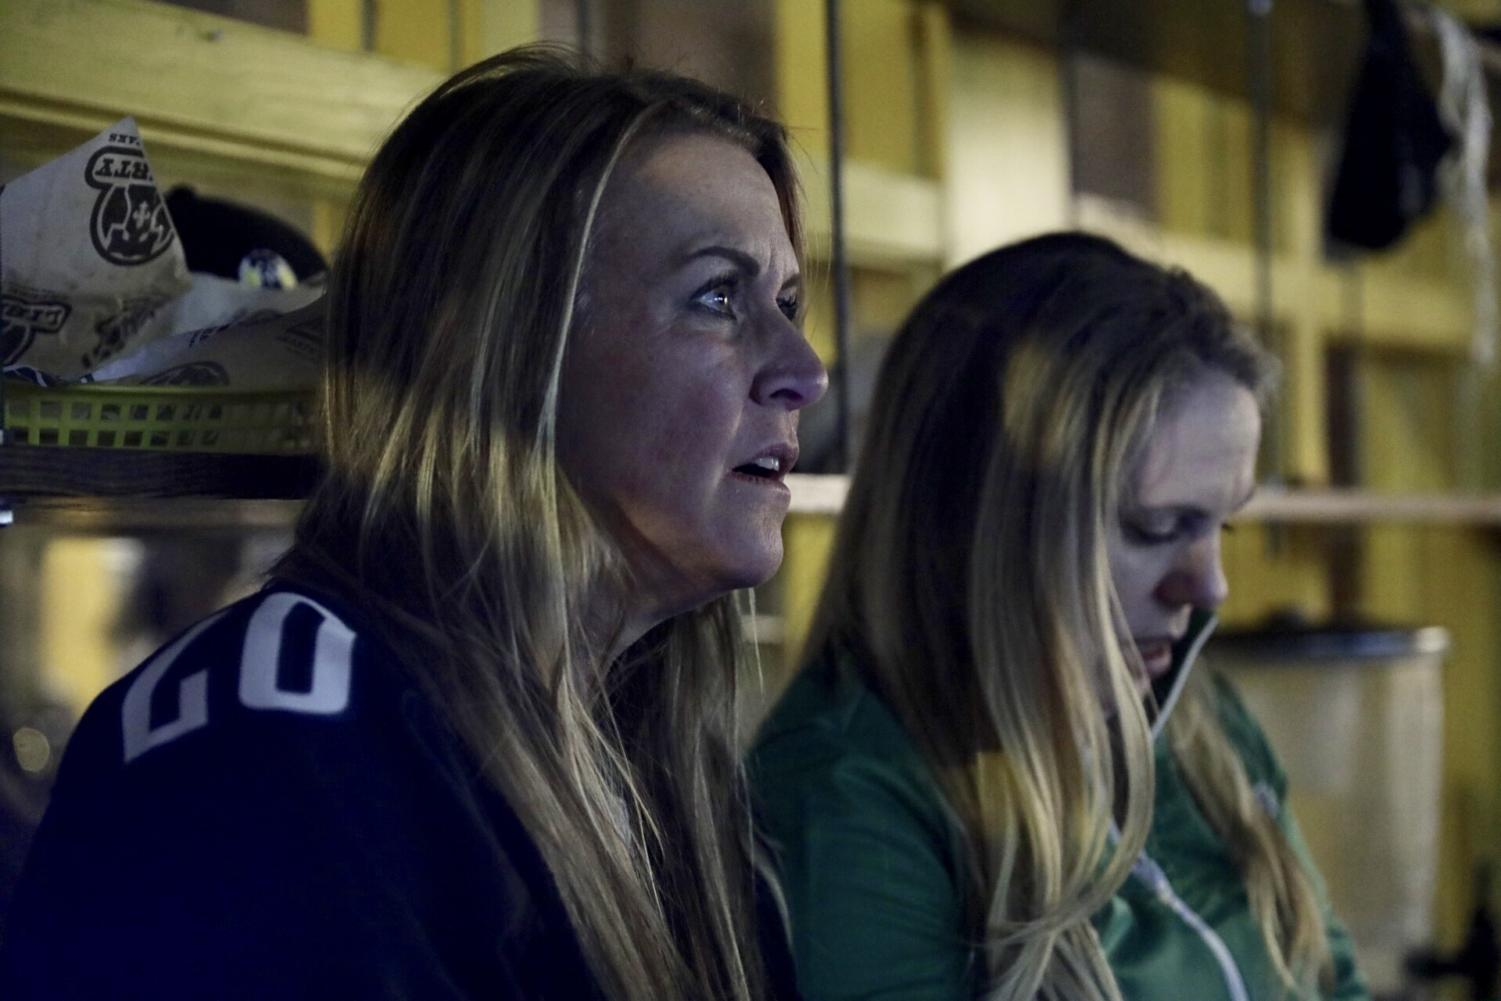 Eagles+fans+are+shocked+after+the+Saints+take+the+lead.